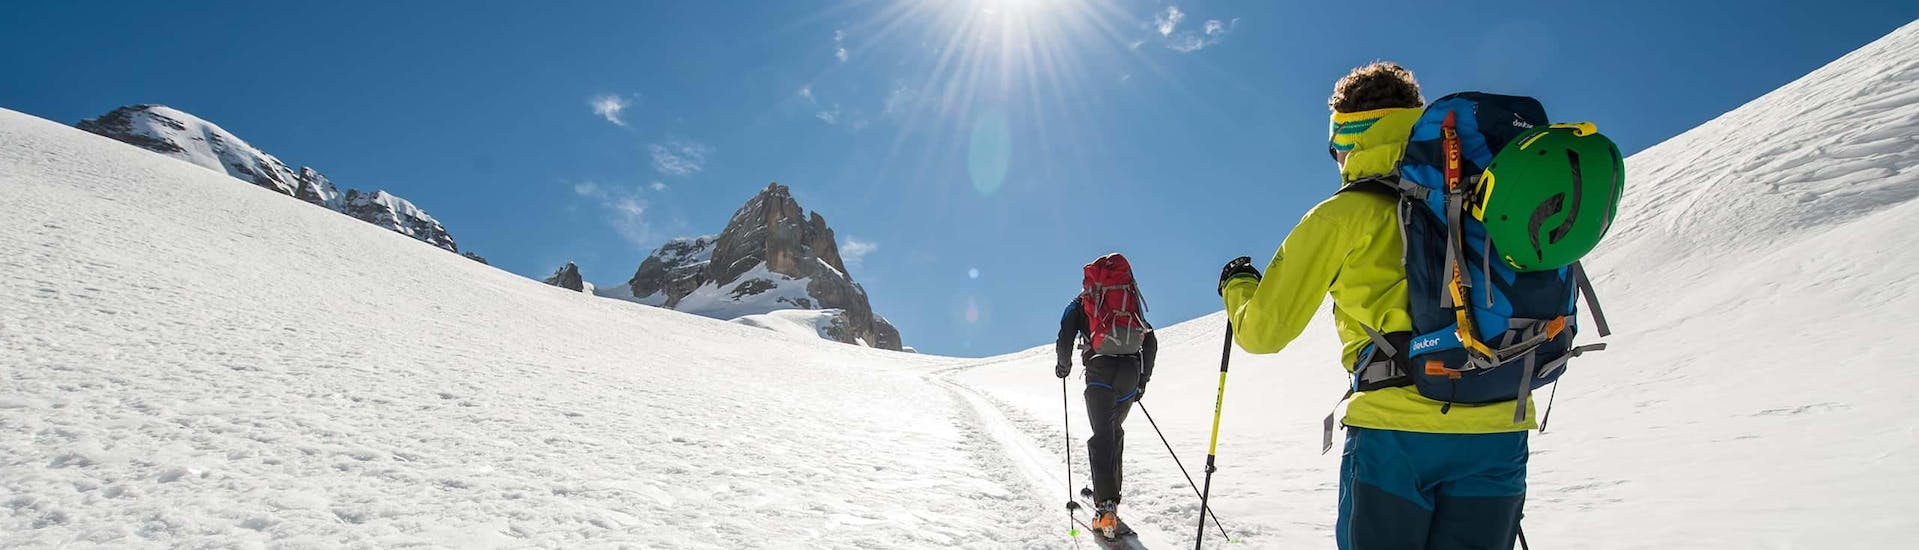 A skier following his Ski Touring Group - All Levels from Skischule A-Z up to the top of the mountain while out ski touring.